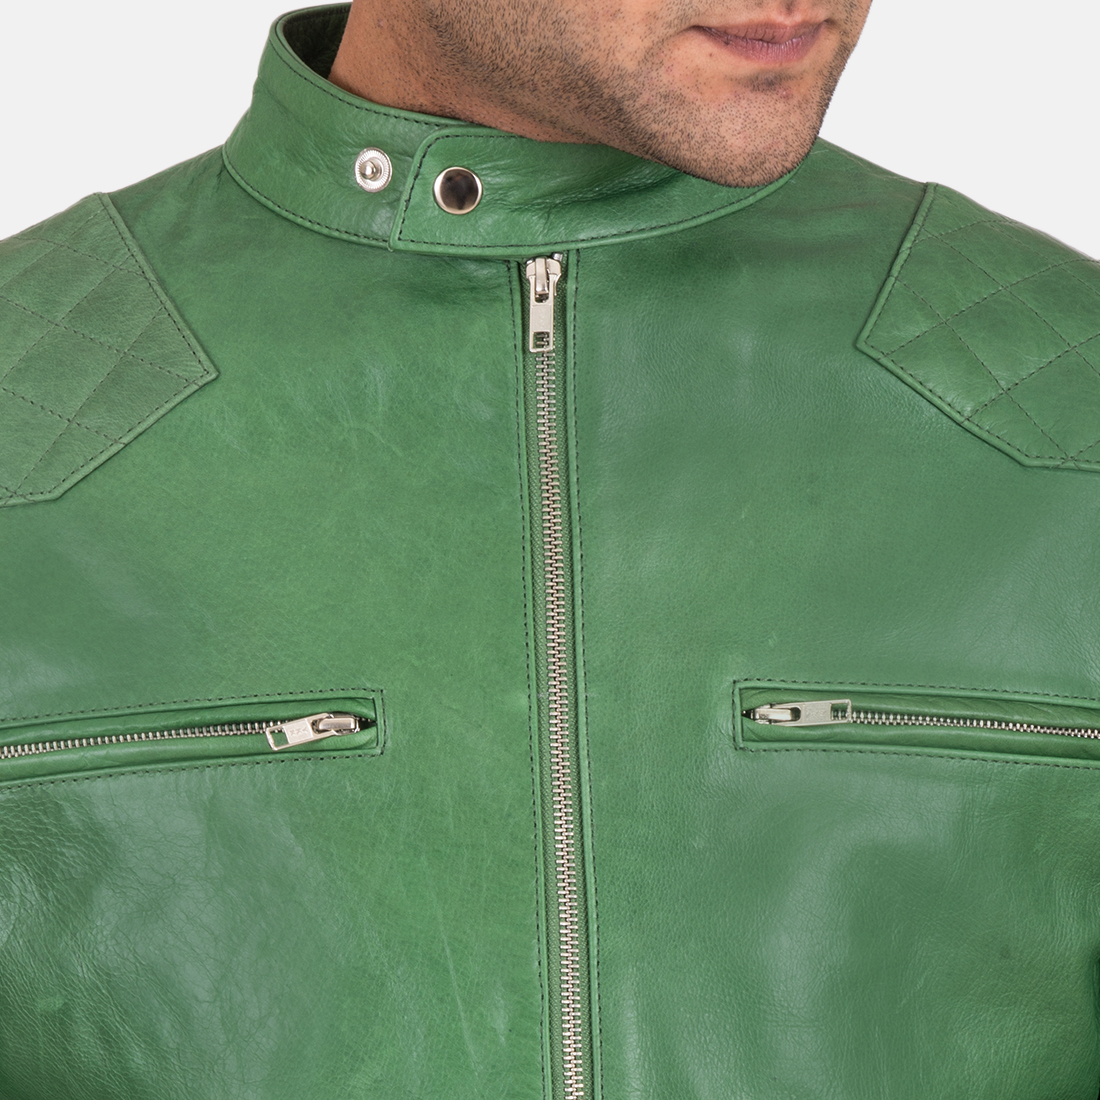 Mens Gatsby Green Leather Biker Jacket 6